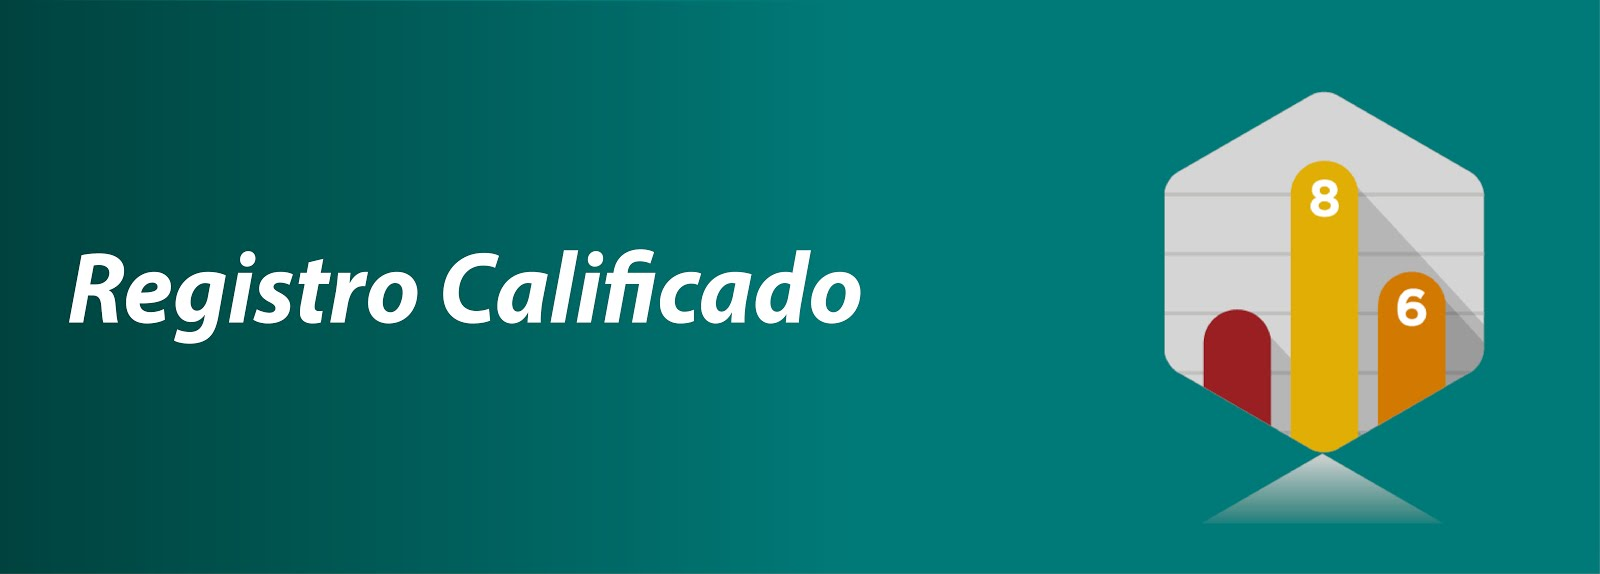 Registro Calificado